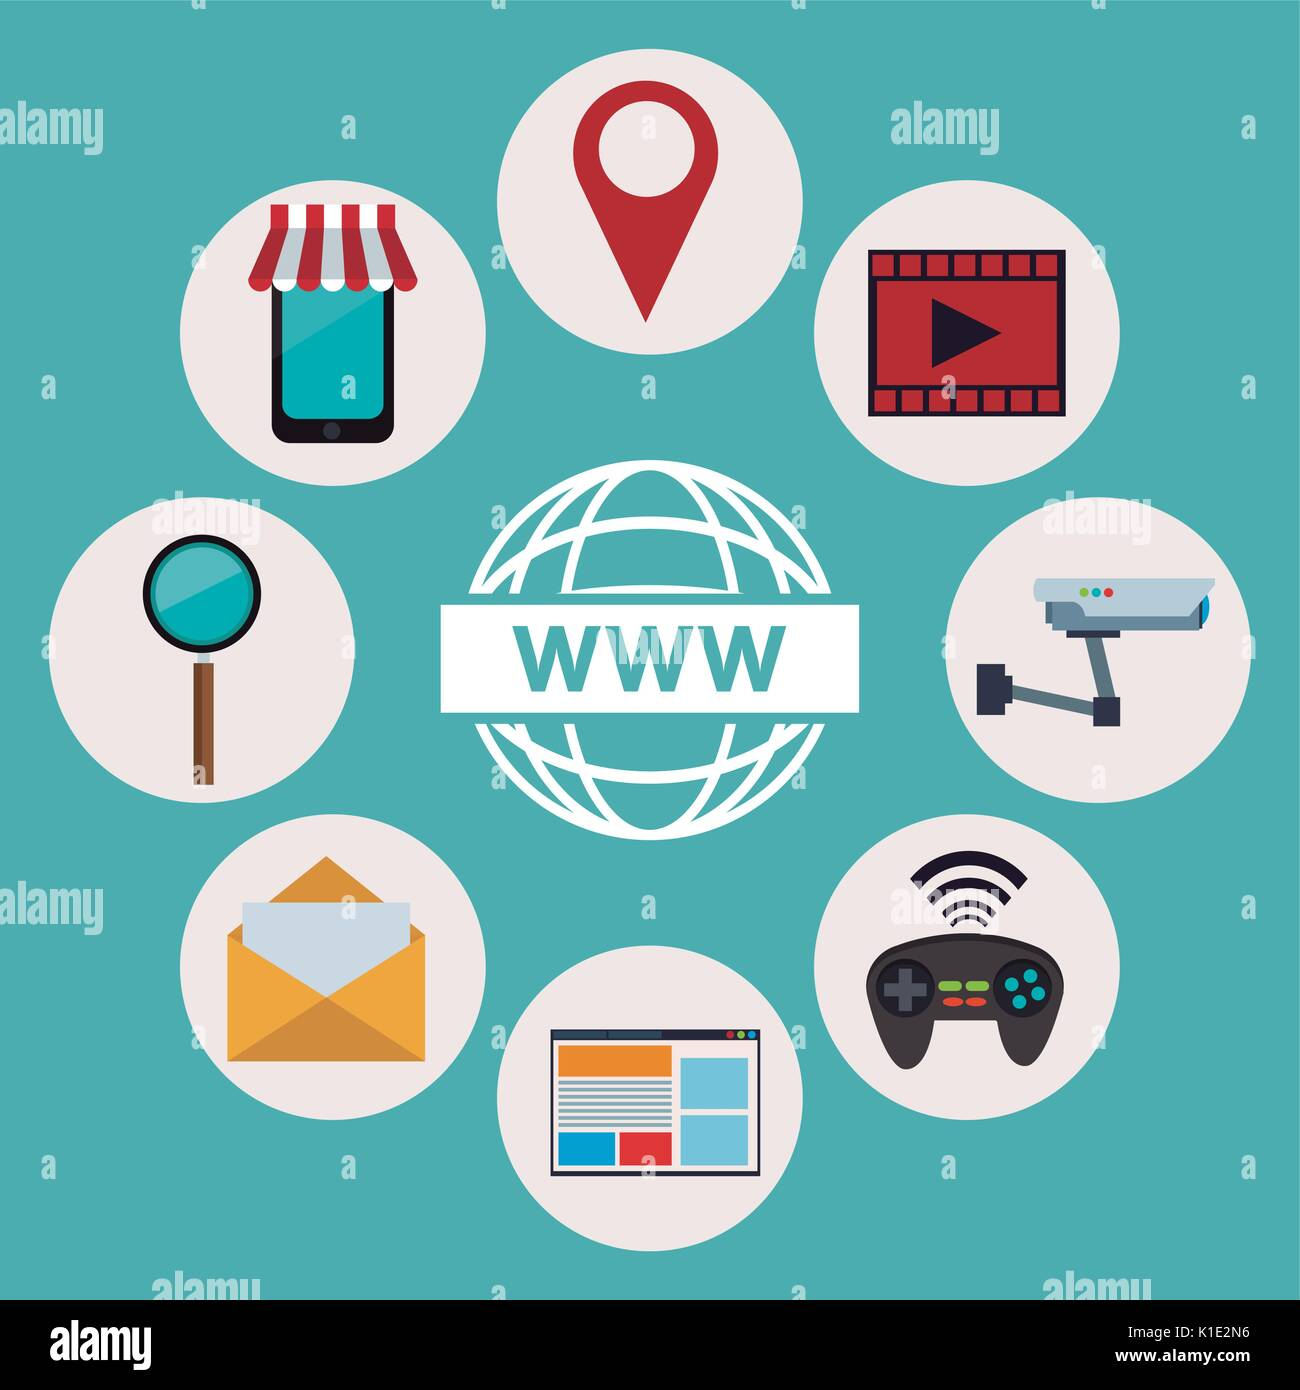 color background of logo world wide web with icons elements technology wireless - Stock Image